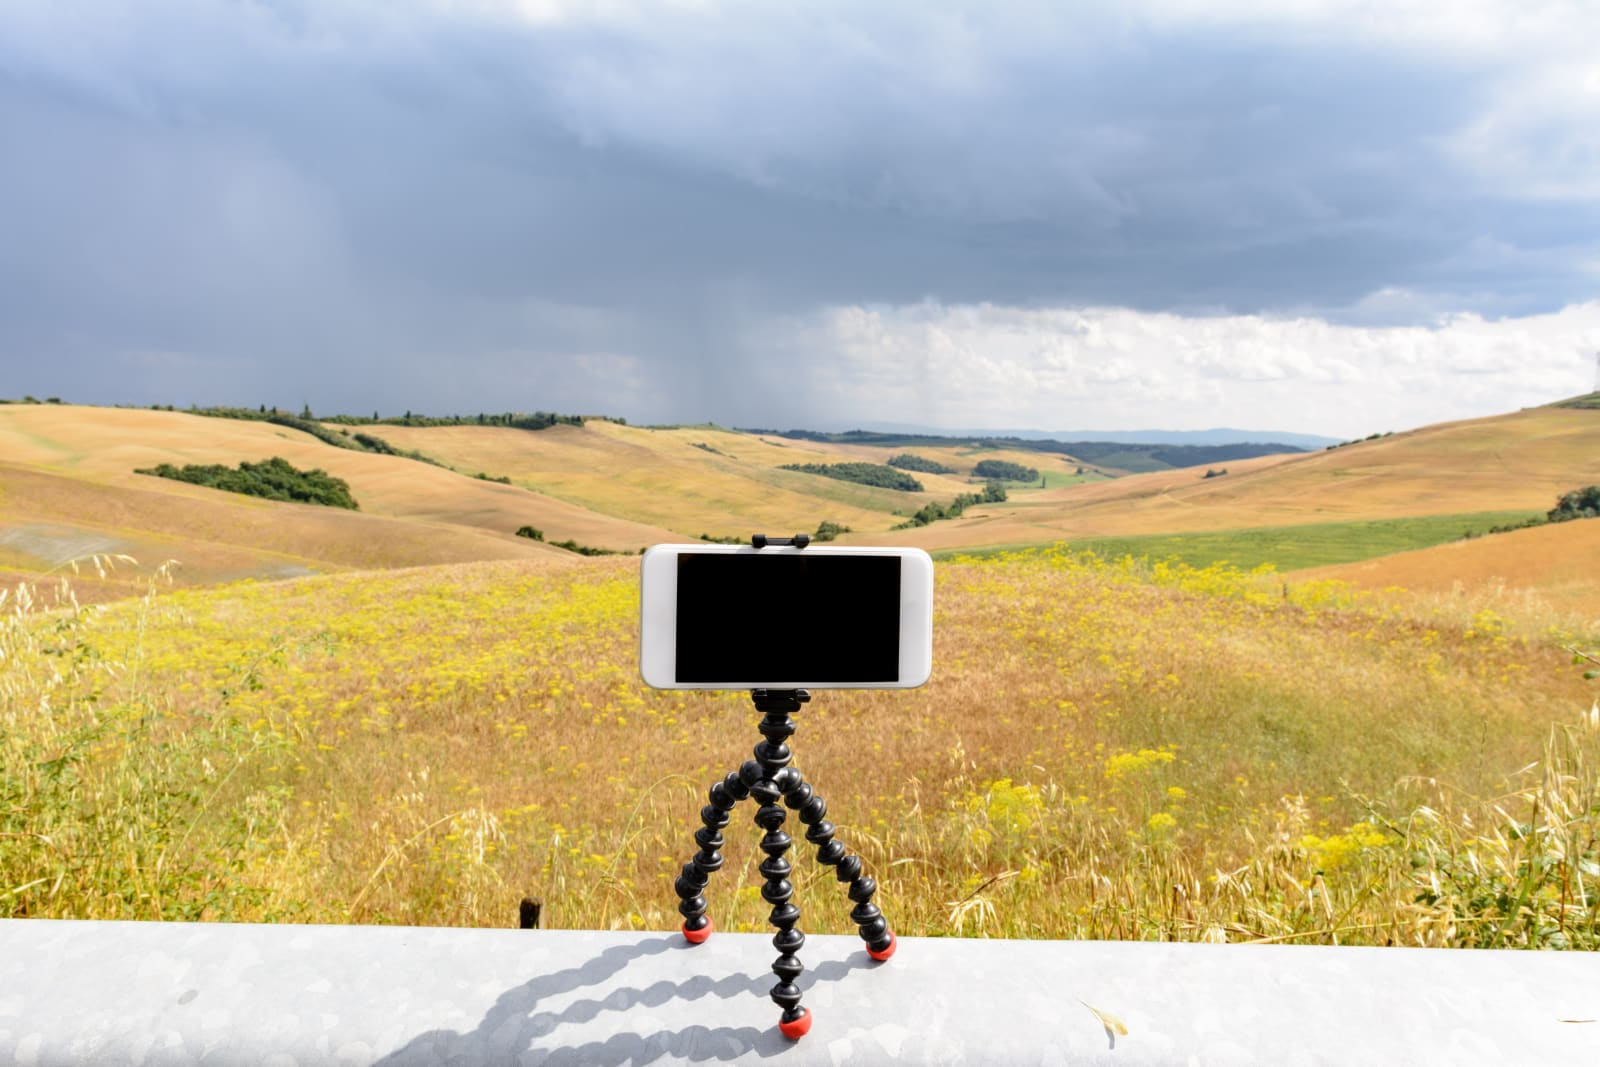 Smartphone on its magnetic tripod